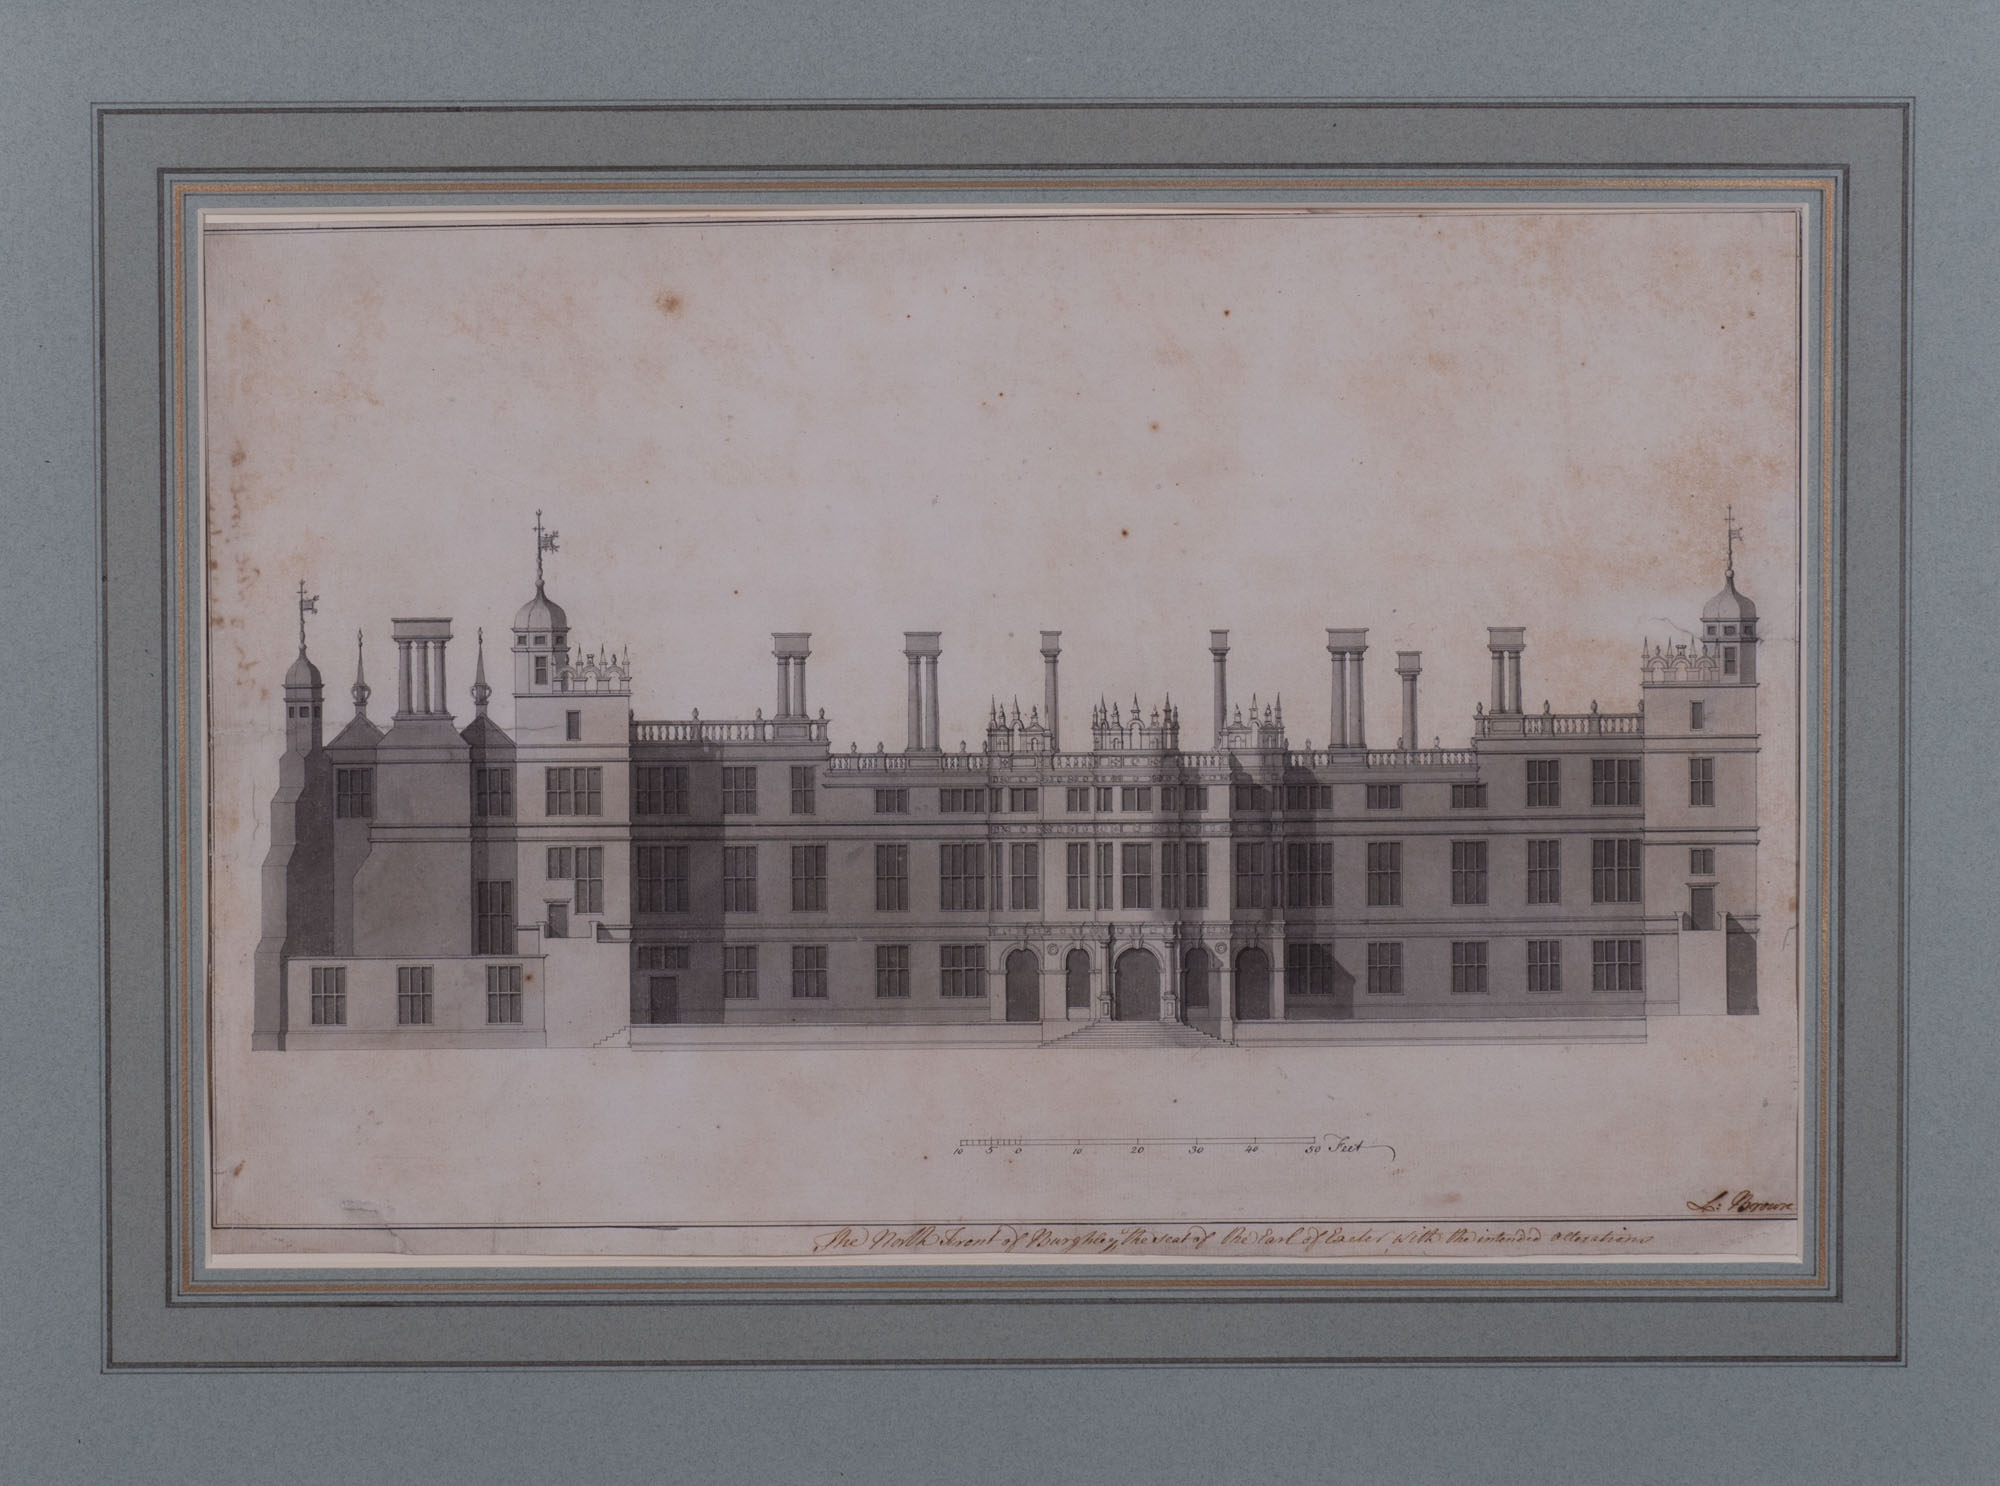 The North Front of Burghley with Intended Alterations, by Lancelot 'Capability' Brown (c. 1716-1783).